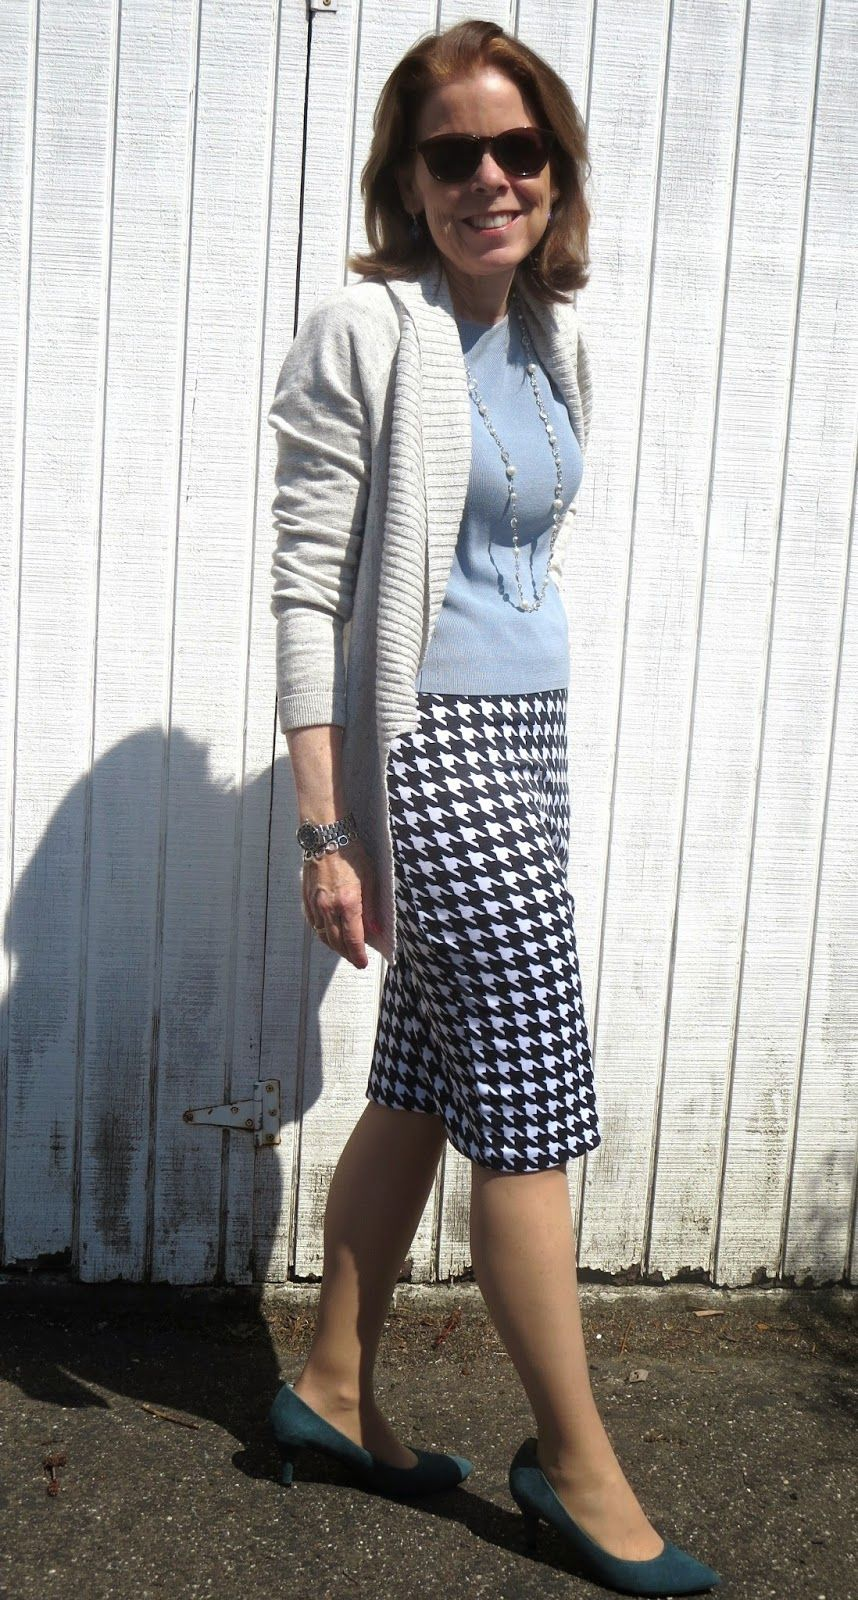 Need a skirt to take on trips? This Covered Perfectly skirt is comfy for work and dinners out. The lightweight, jersey material makes it a great piece for tucking into luggage.